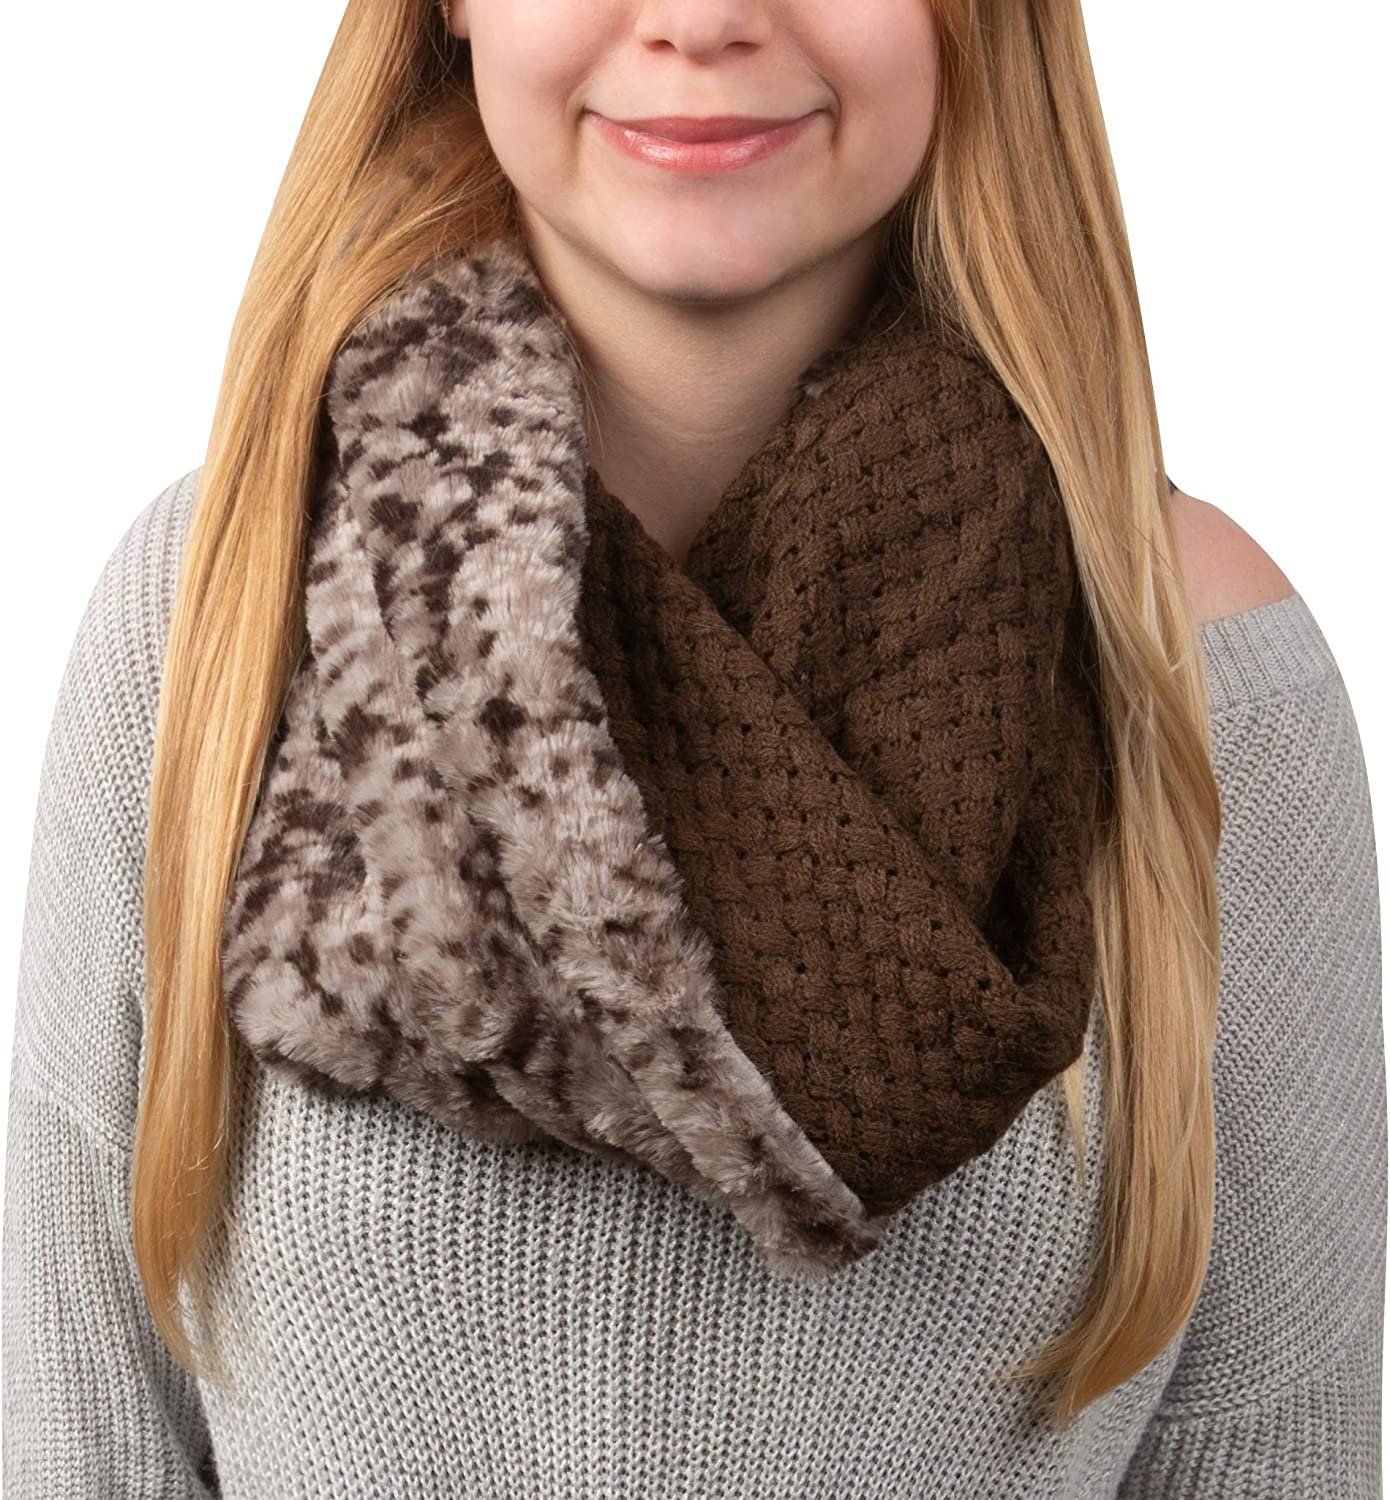 Pavilion Gift Company Warm Brown-Weave Knit & Faux Fur Infinity Scarf, One Size